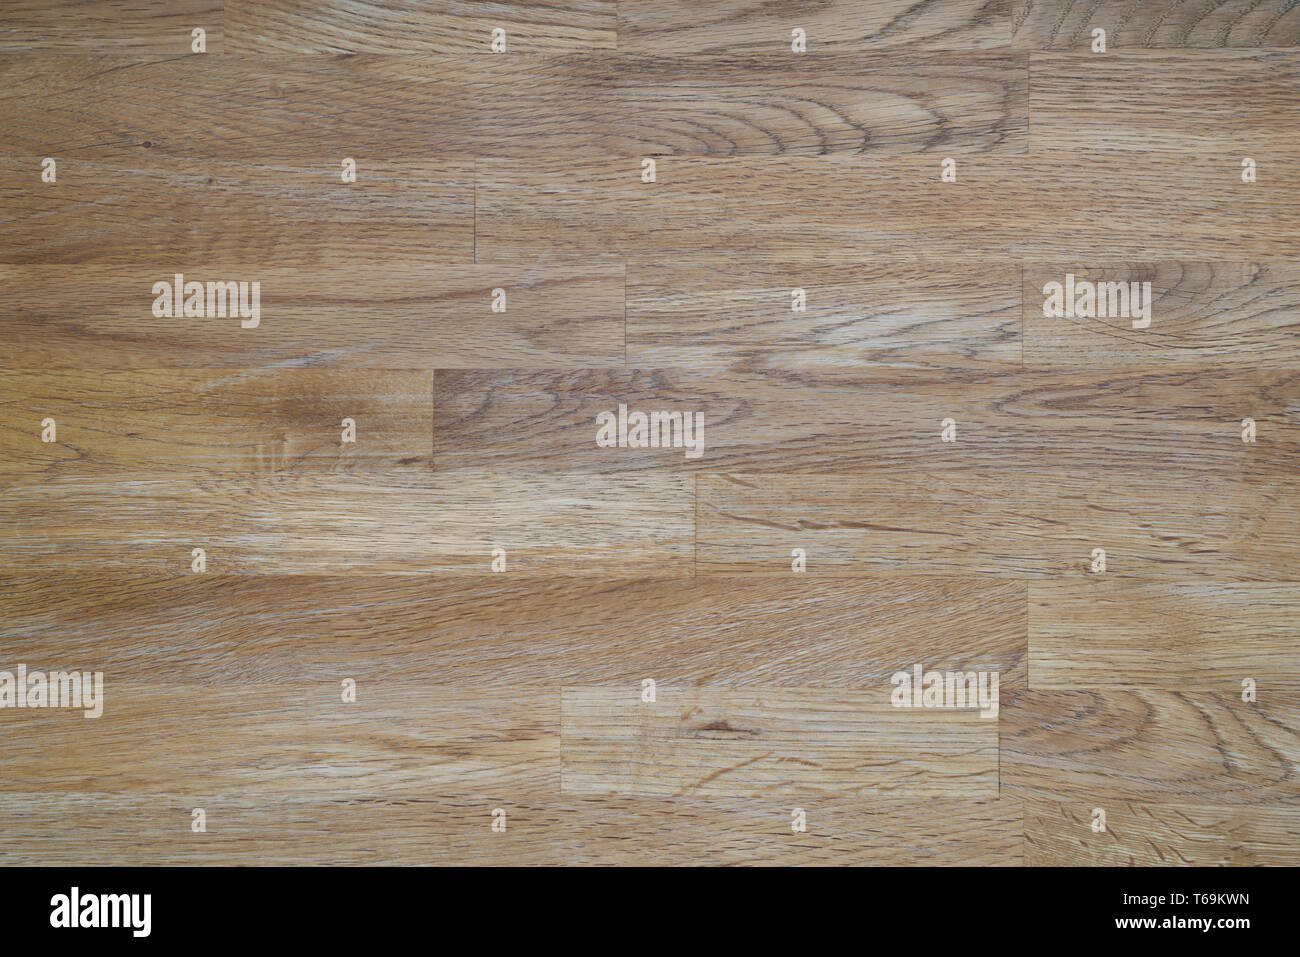 Detailed picture of the surface of an old wooden table - Stock Image